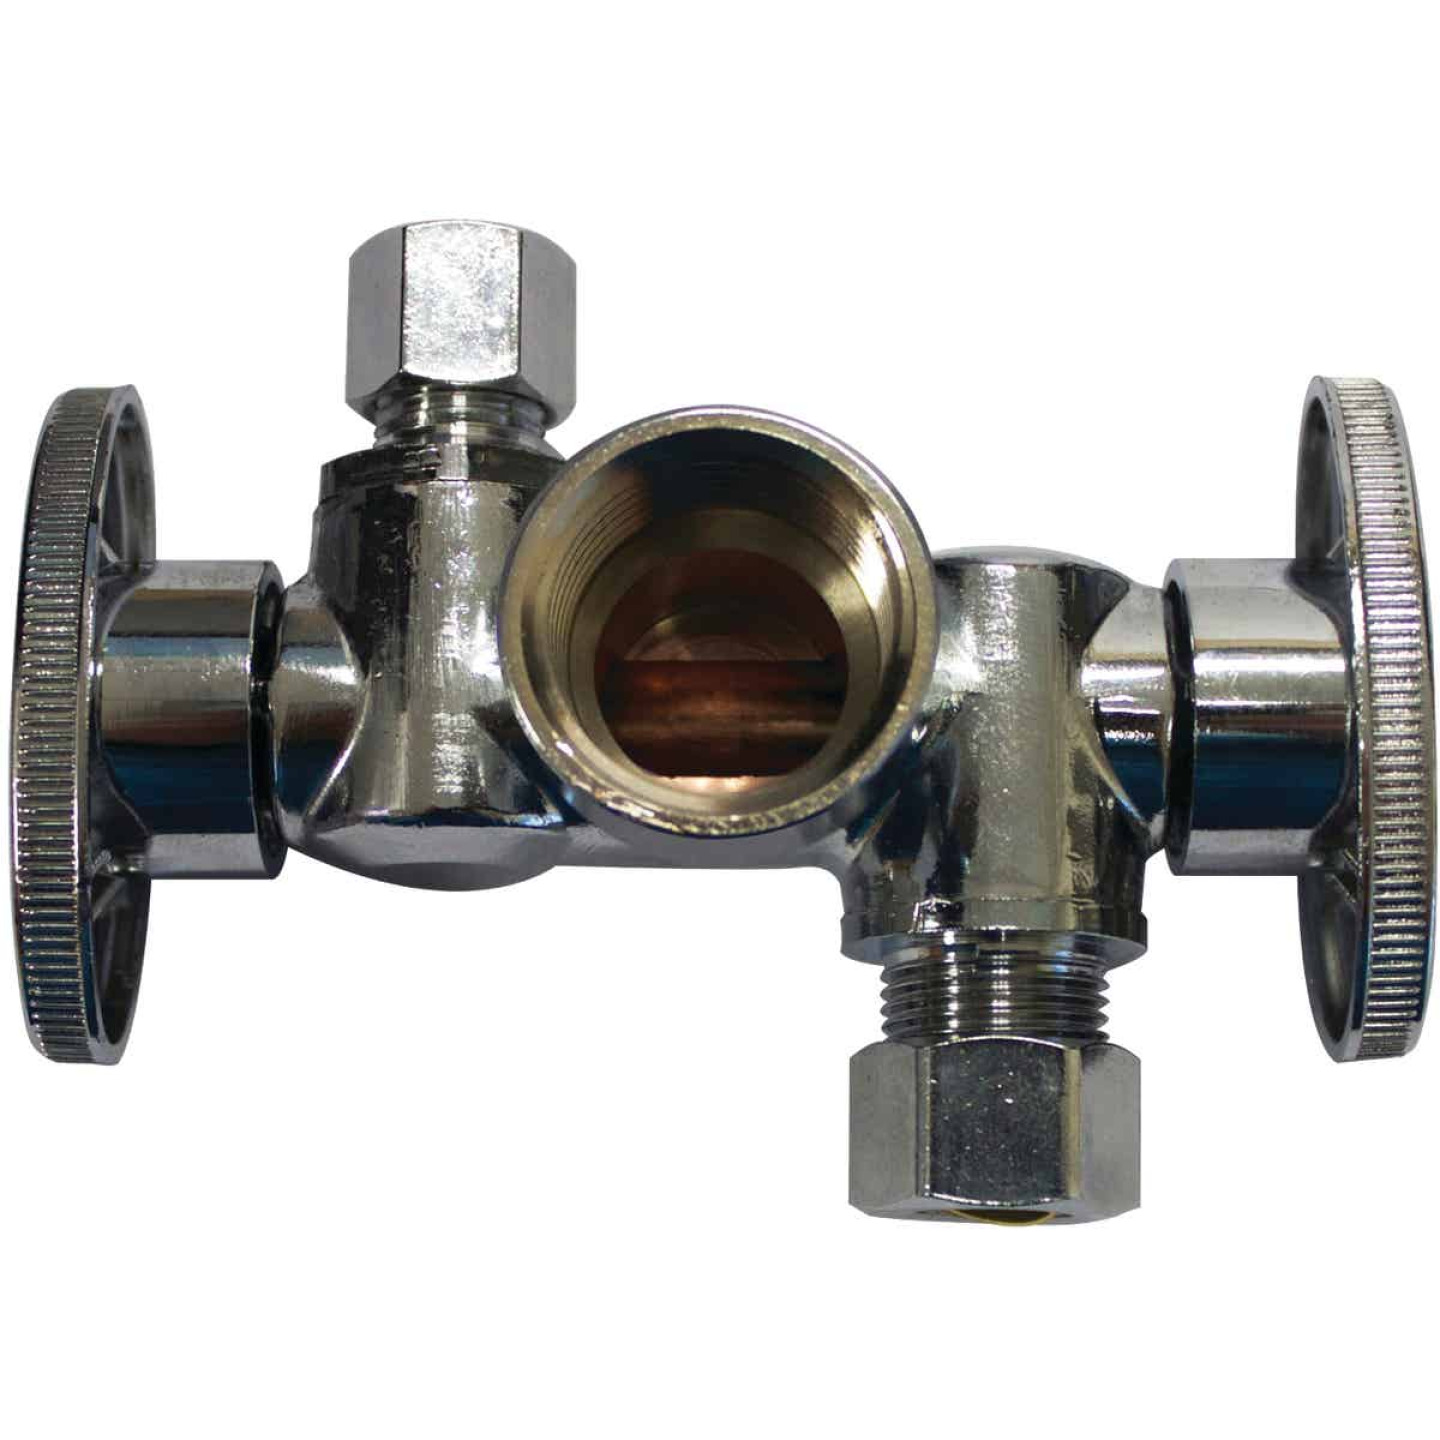 "Keeney 1/2"" FIP x 3/8"" OD x 1/4"" OD Quarter Turn Dual Shut-Off/Dual Outlet Valve Image 1"